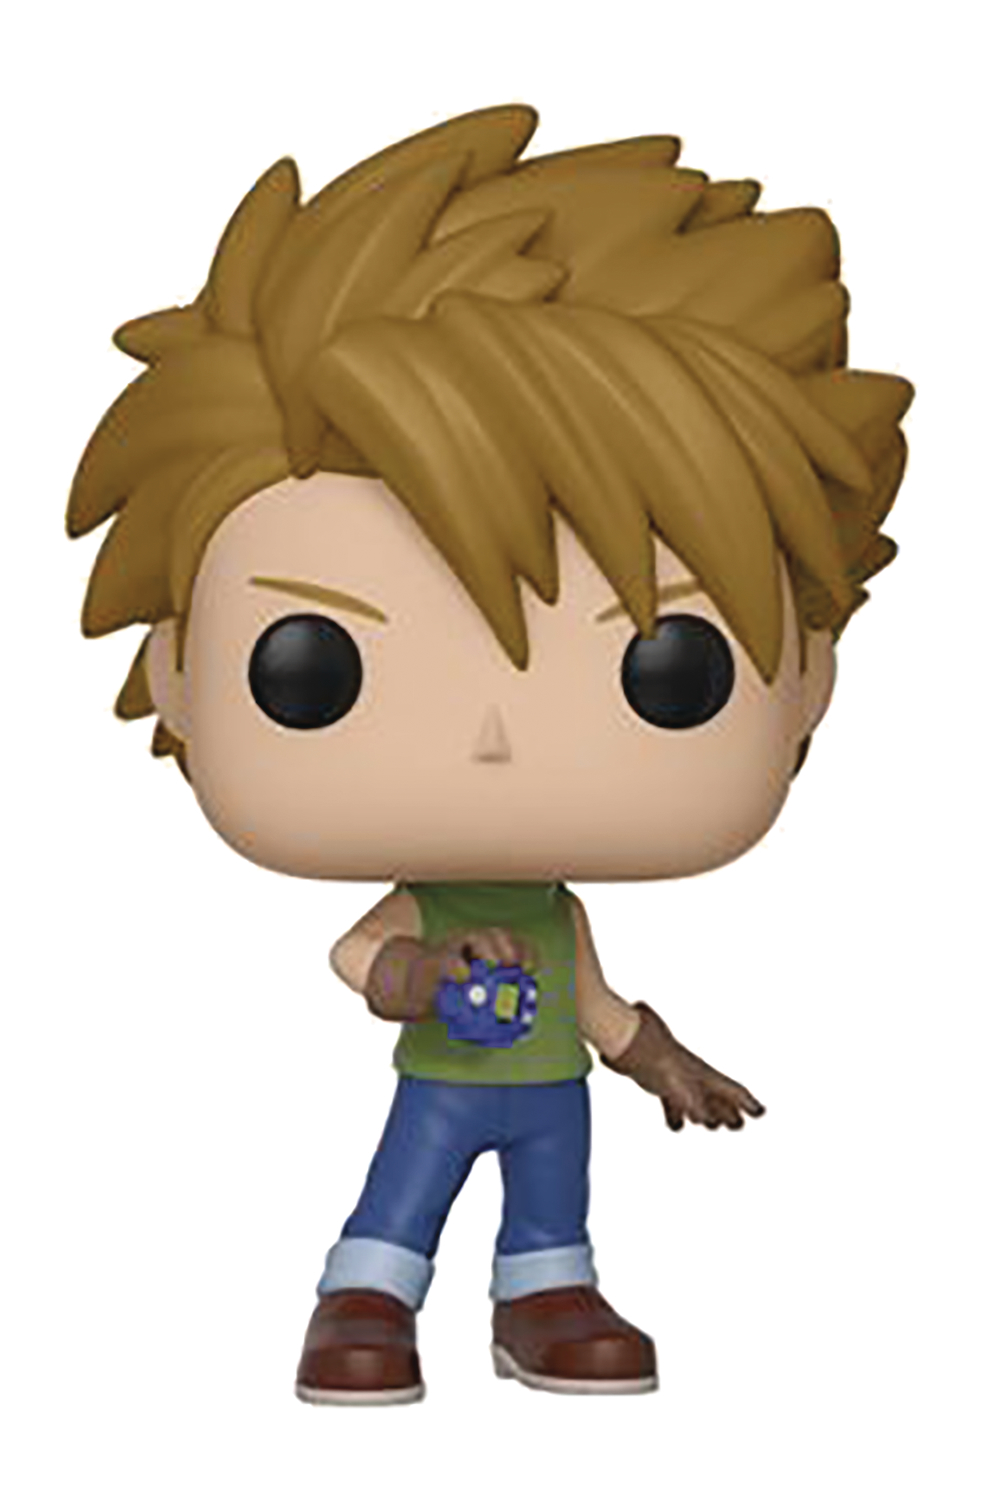 POP ANIMATION DIGIMON S1 MATT VINYL FIGURE